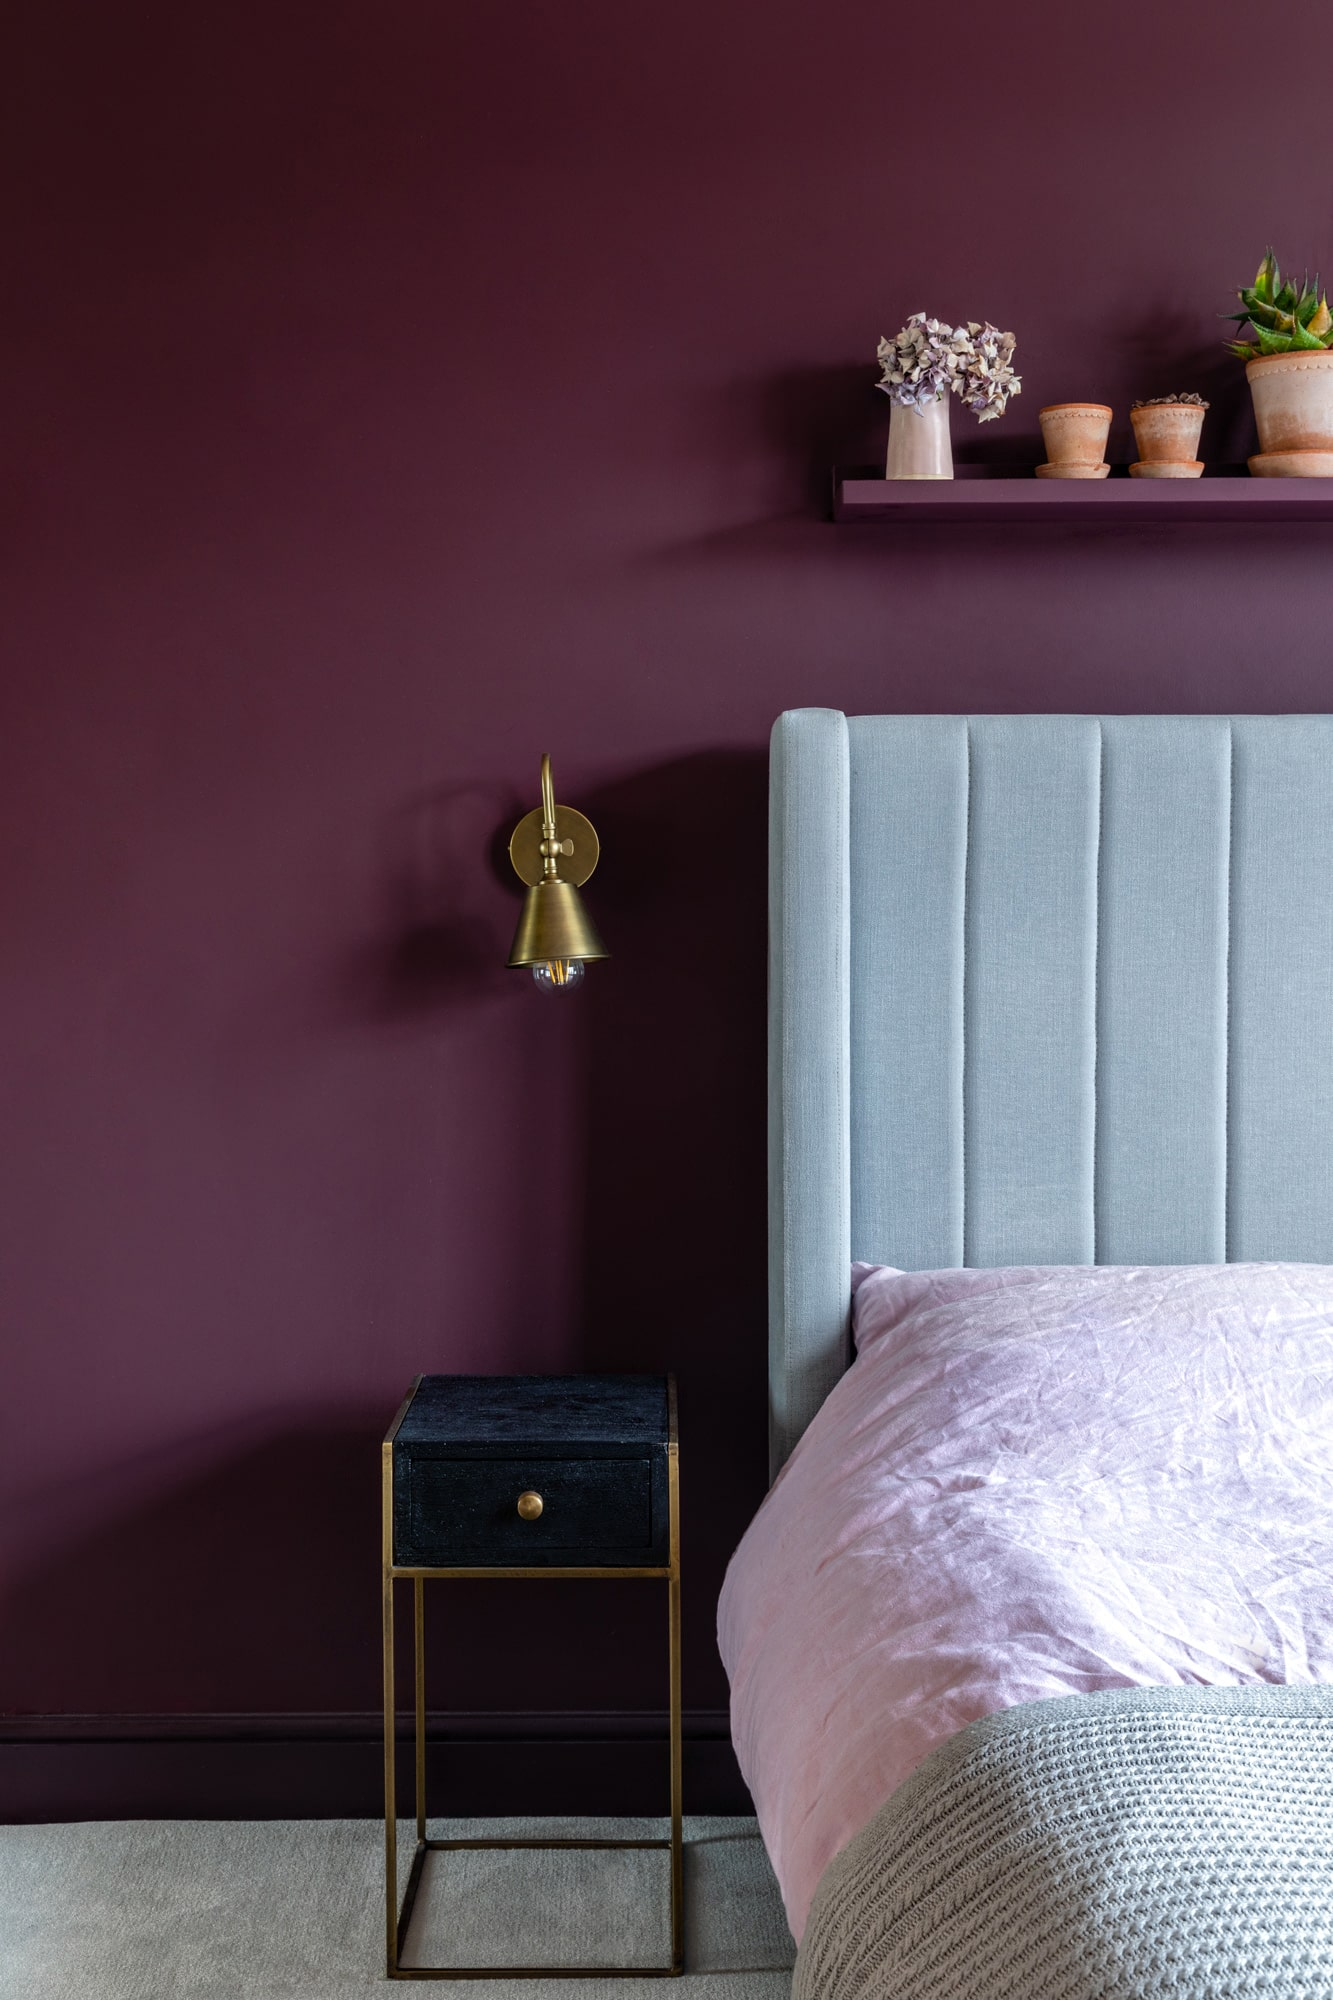 Interior detail shot: bedroom with dark burgundy walls; light blue bed, black bedside table, gold lamp, a shelf with succulents